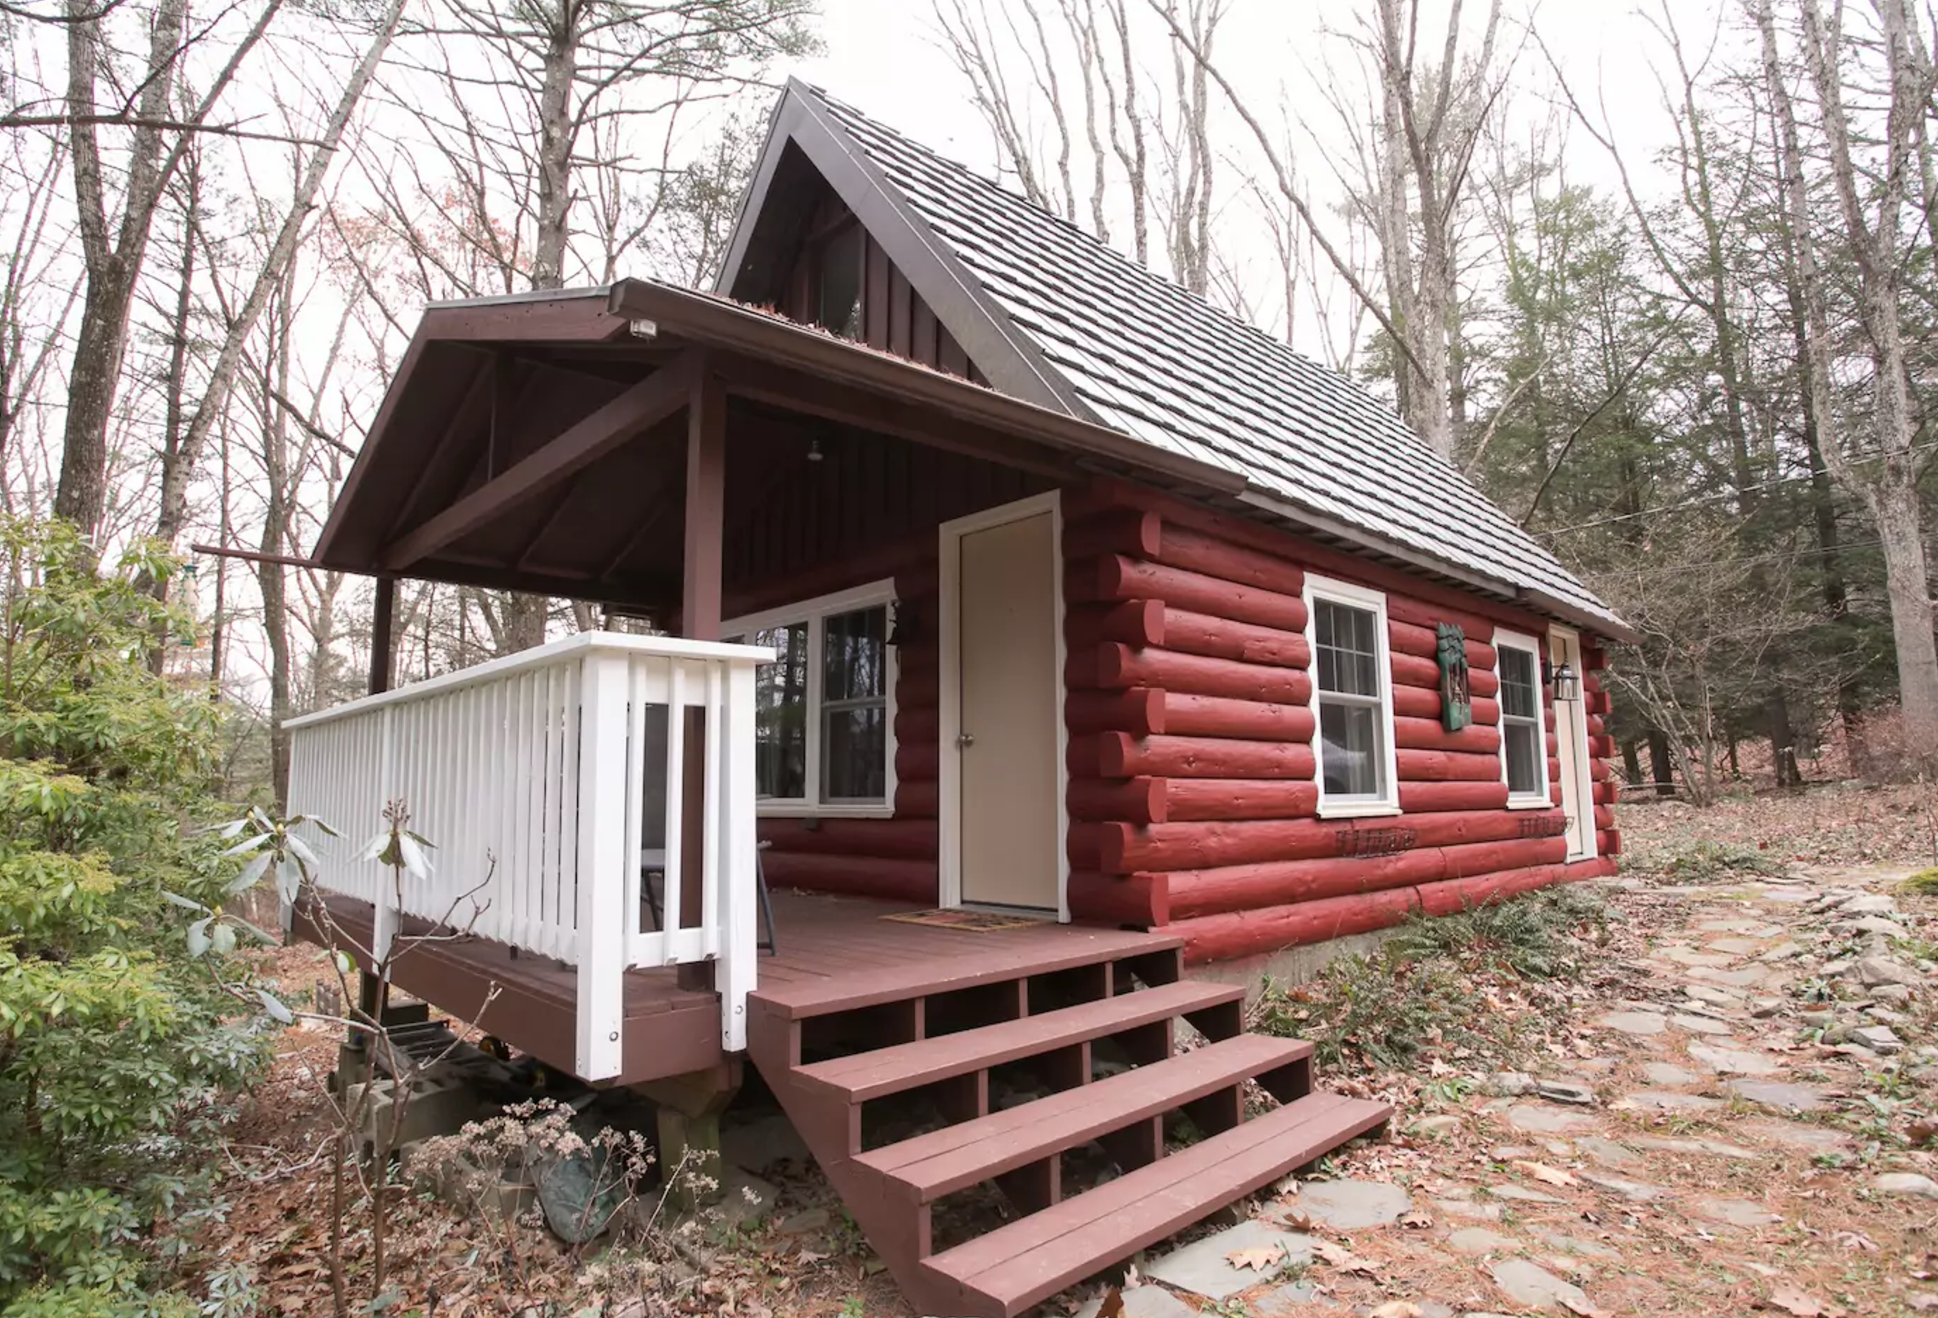 Tiny House Floor Plans Small Cabins Tiny Houses Small: 5 Tiny Cabins In The Poconos You Can Rent This Summer